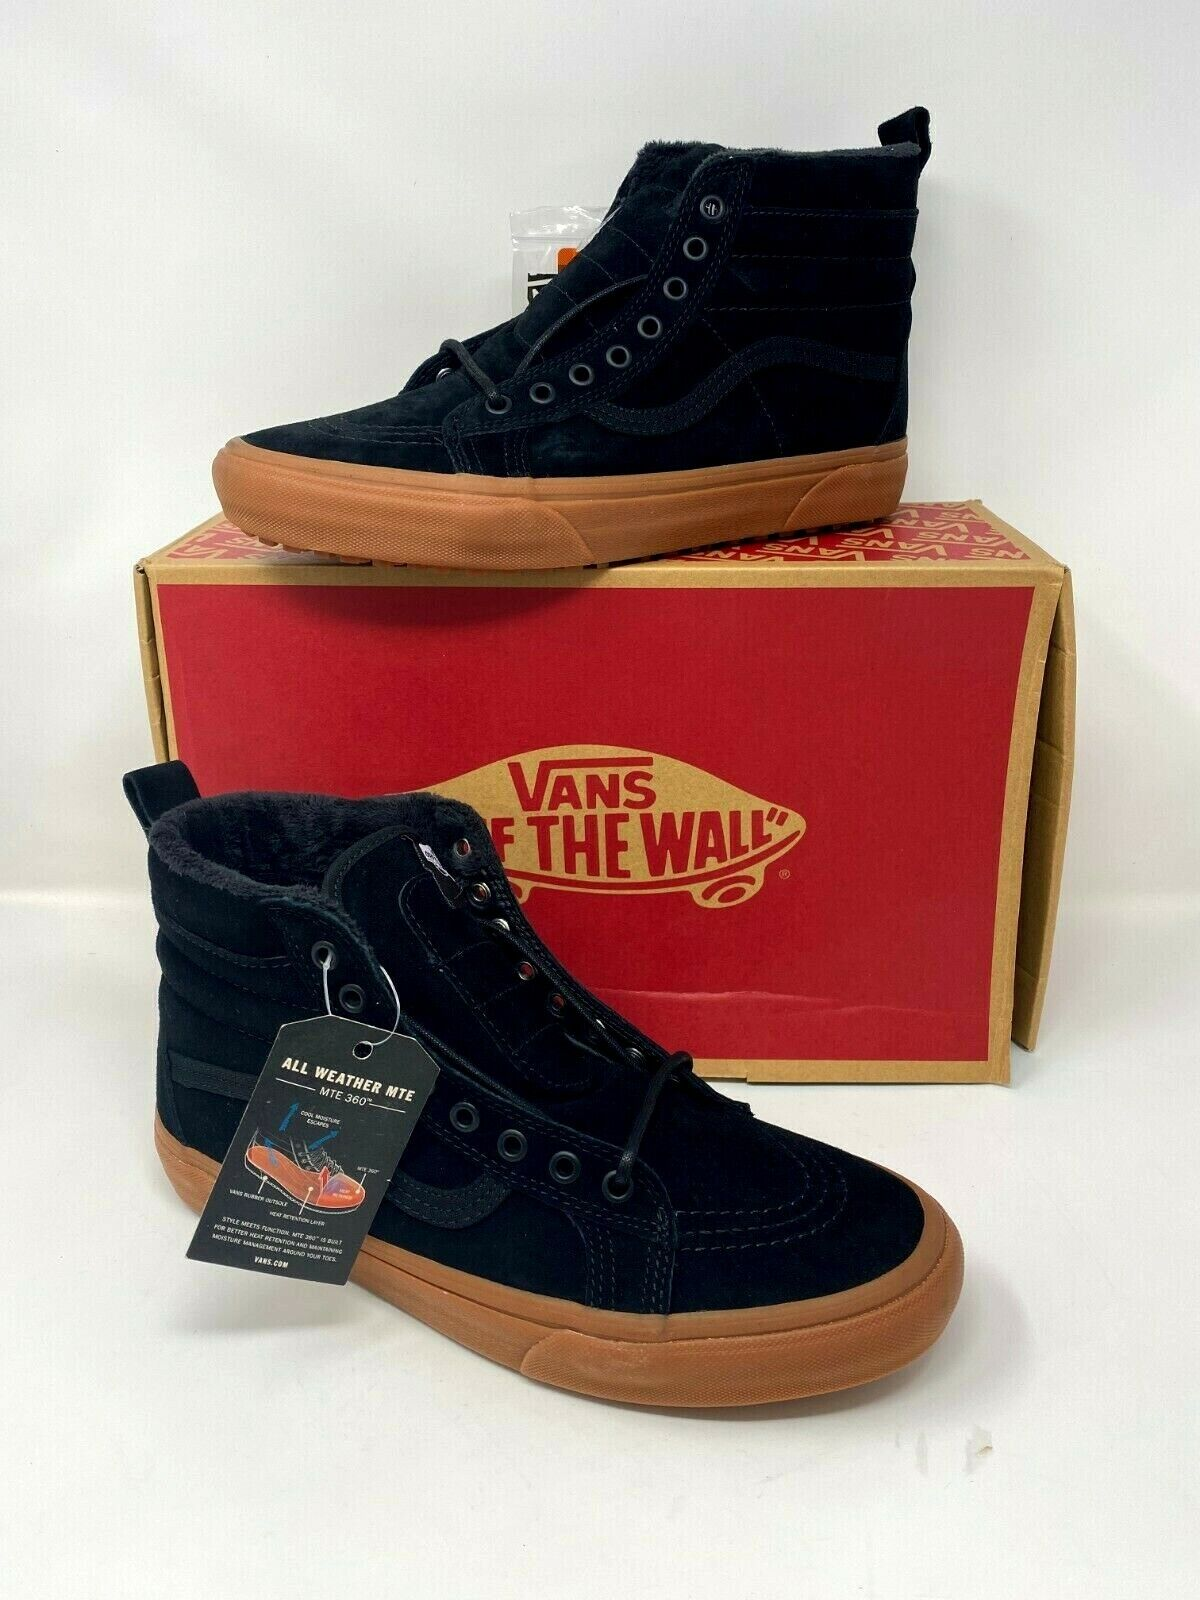 vans sk8 hi zip mte black leather gum toddler size us 4 5 vn0a32r3qqw nwb for sale online ebay vans sk8 hi mte leather black gum shoes men s us size 8 women s size 9 5